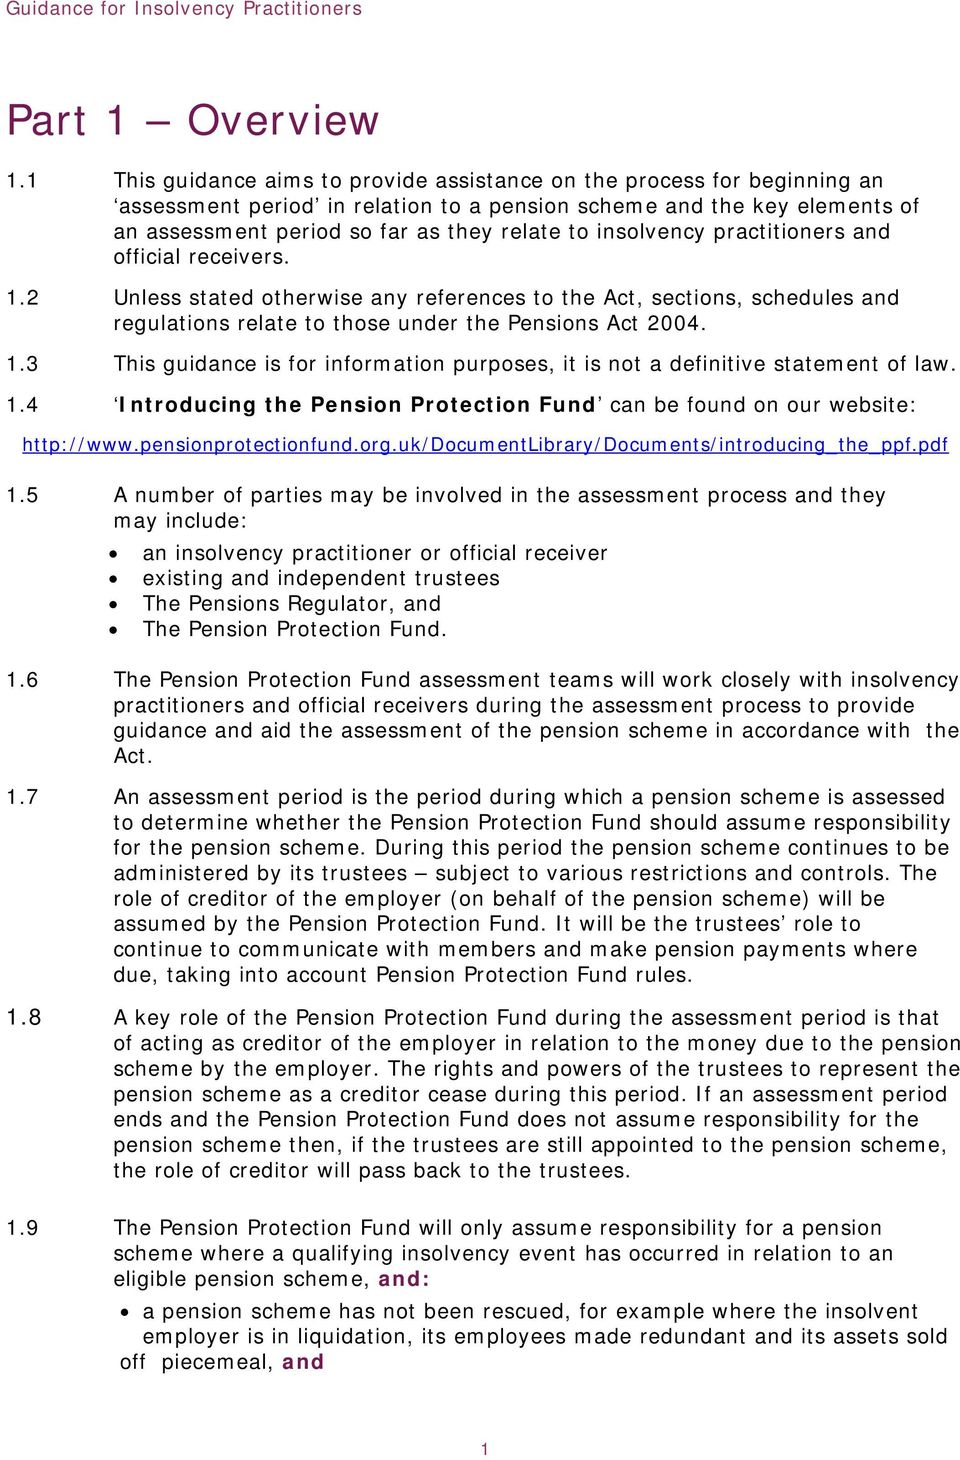 insolvency practitioners and official receivers. 1.2 Unless stated otherwise any references to the Act, sections, schedules and regulations relate to those under the Pensions Act 2004. 1.3 This guidance is for information purposes, it is not a definitive statement of law.